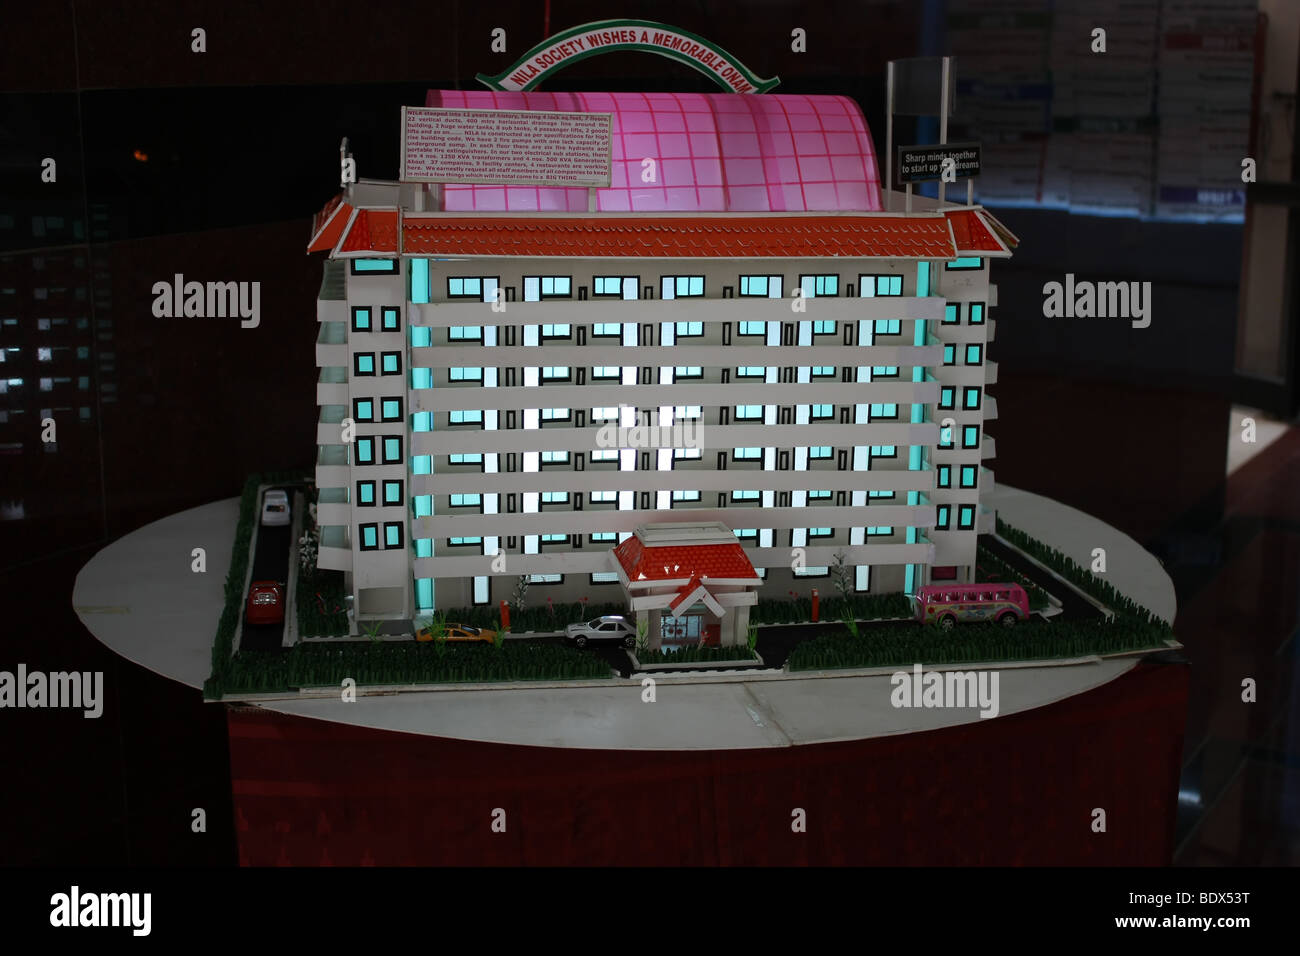 A Model of a building lighted from inside - Stock Image